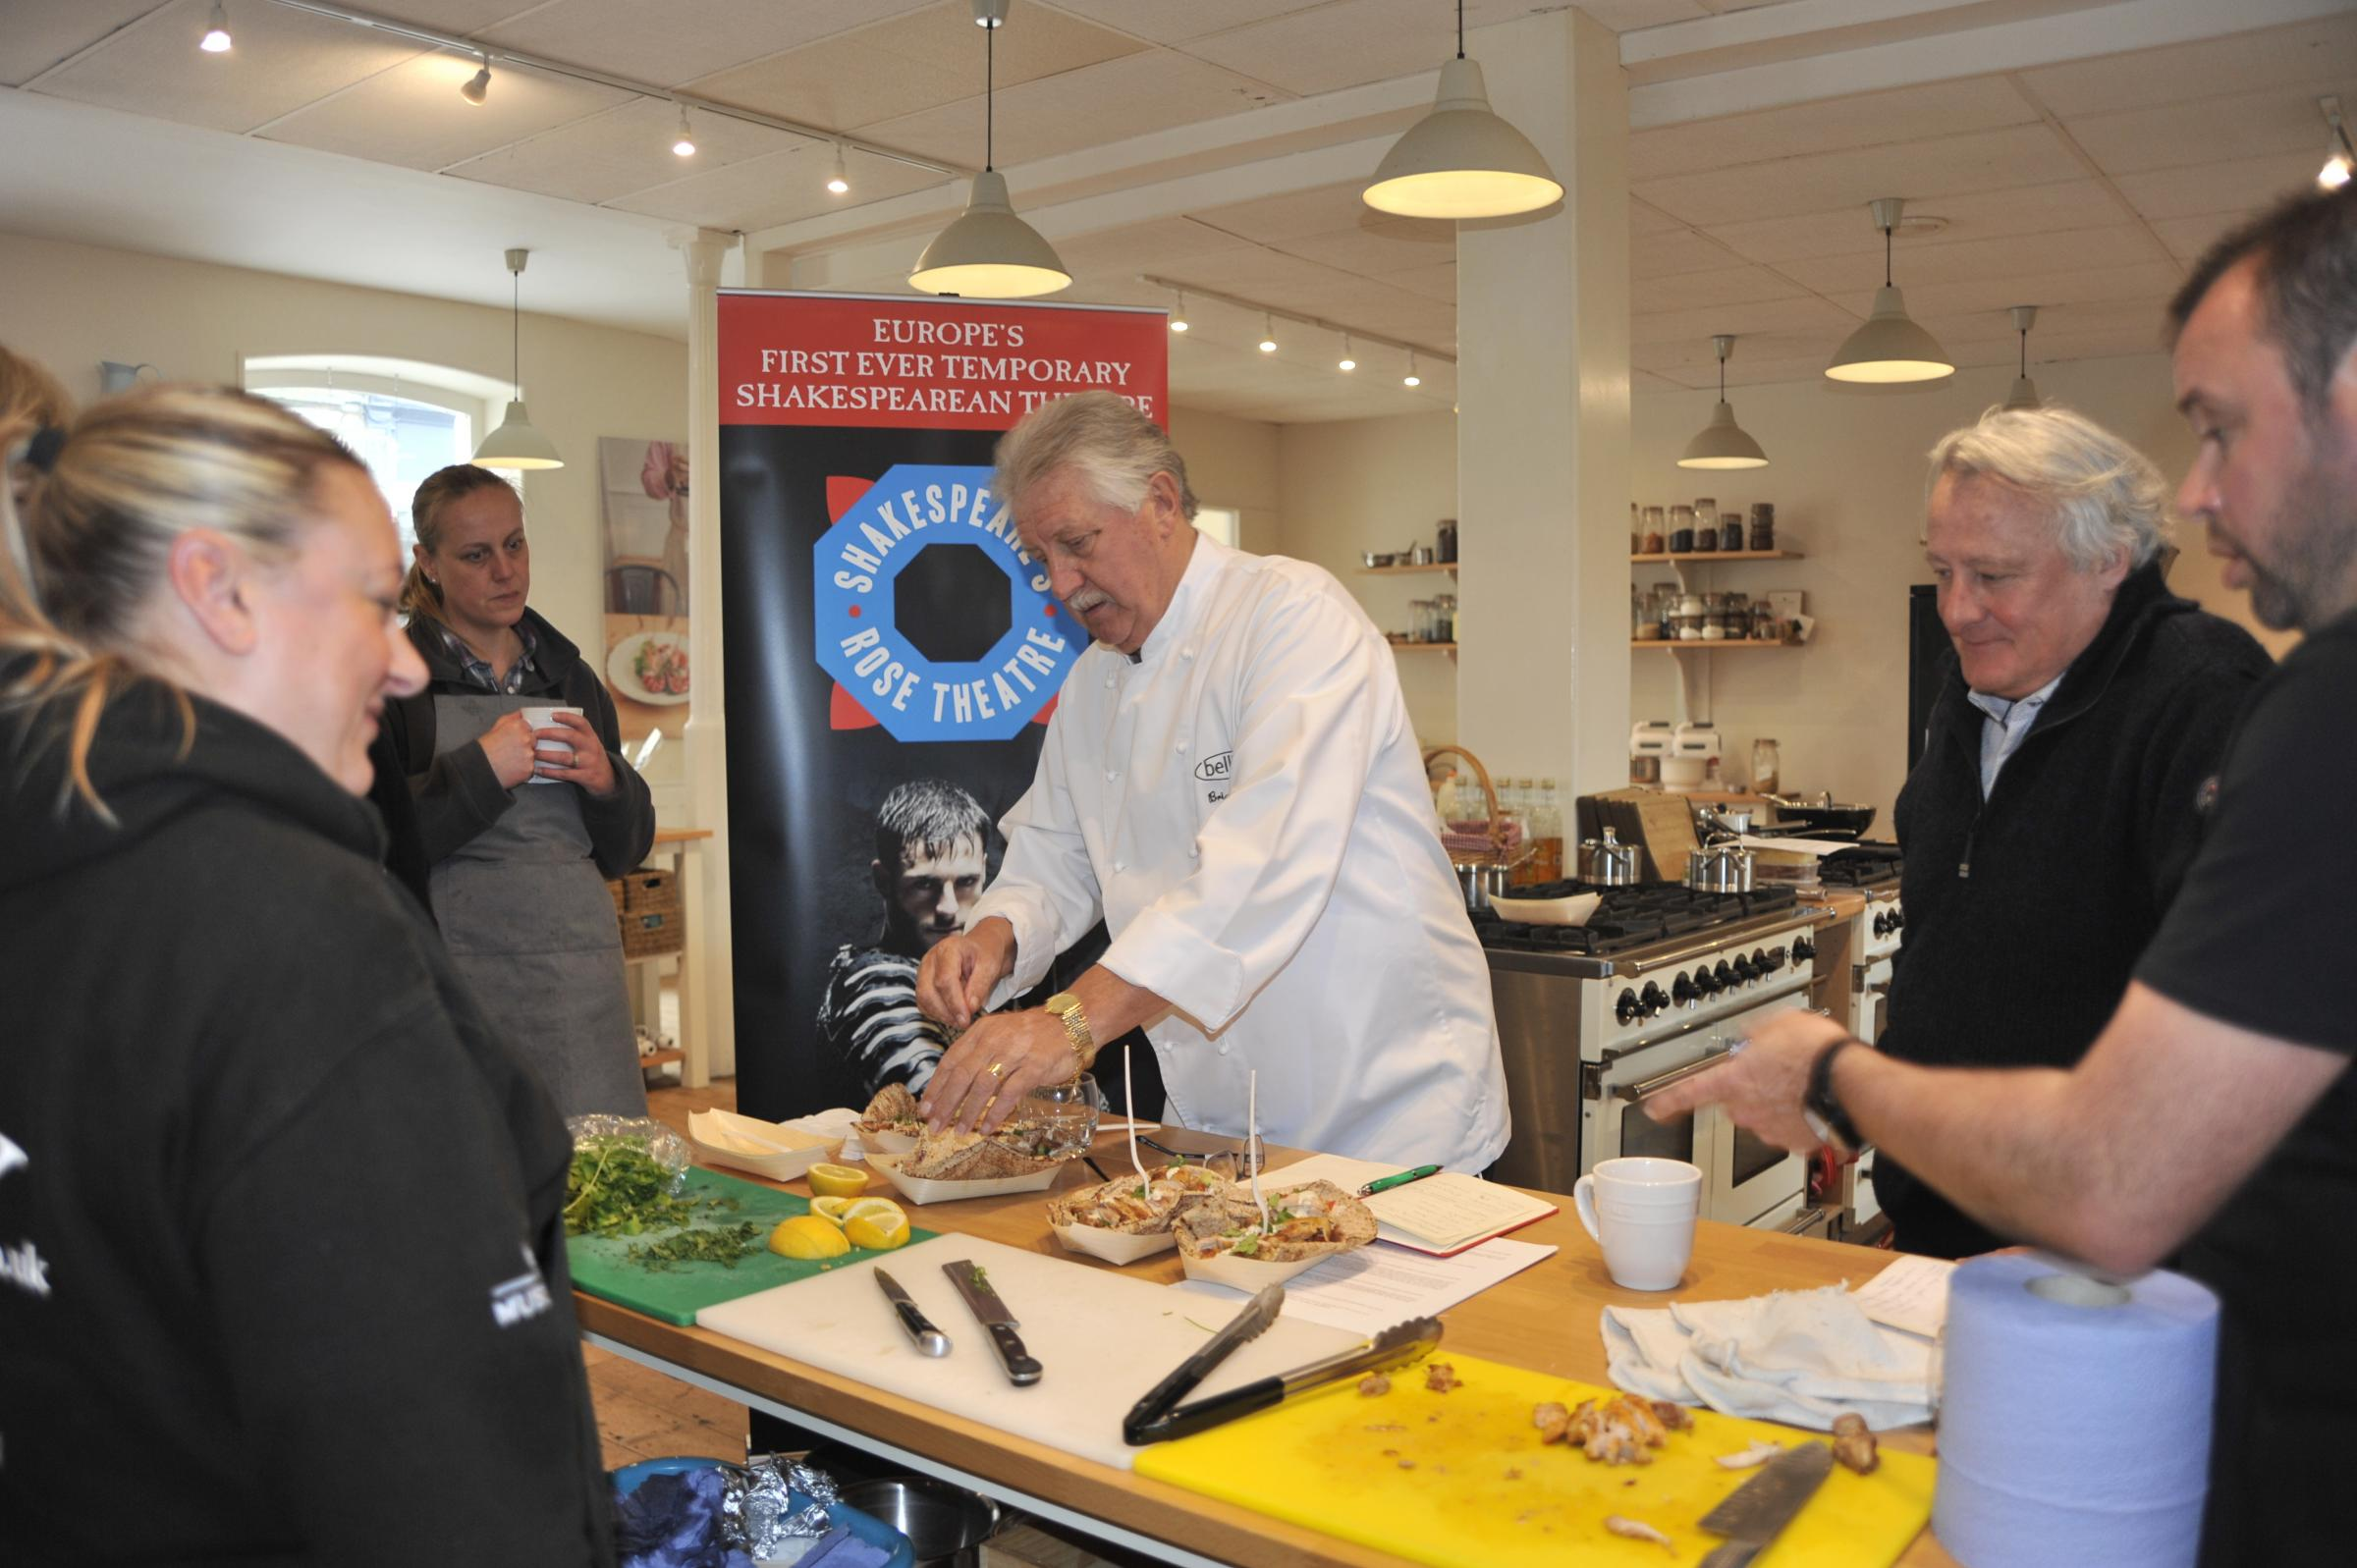 Chef Brian Turner during his visit to Malton Cookery School as he prepares a menu for this summer's Shakespeare extravaganza in York